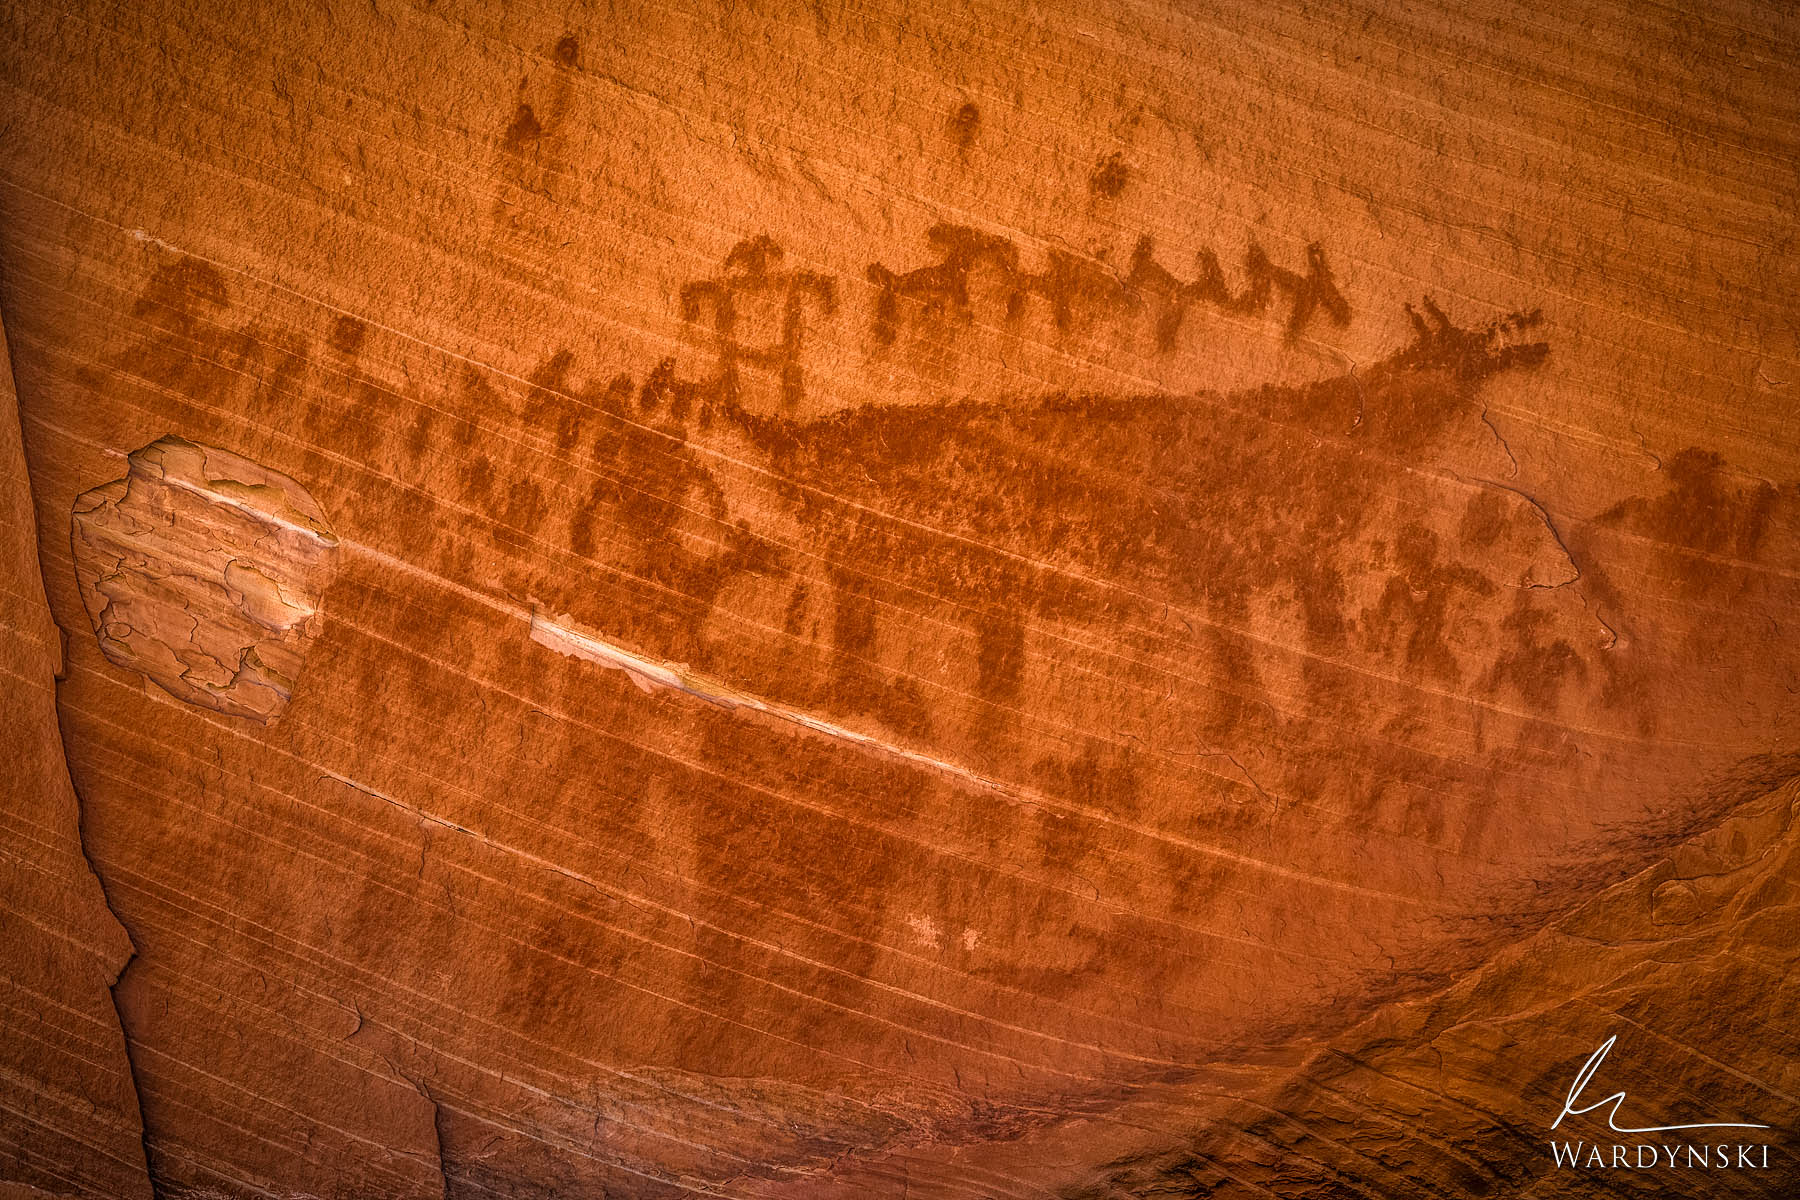 Fine Art Print | Limited Edition of 25  A 1,000 year old  pictograph depicting a bear hunt remains on a sandstone wall long after...